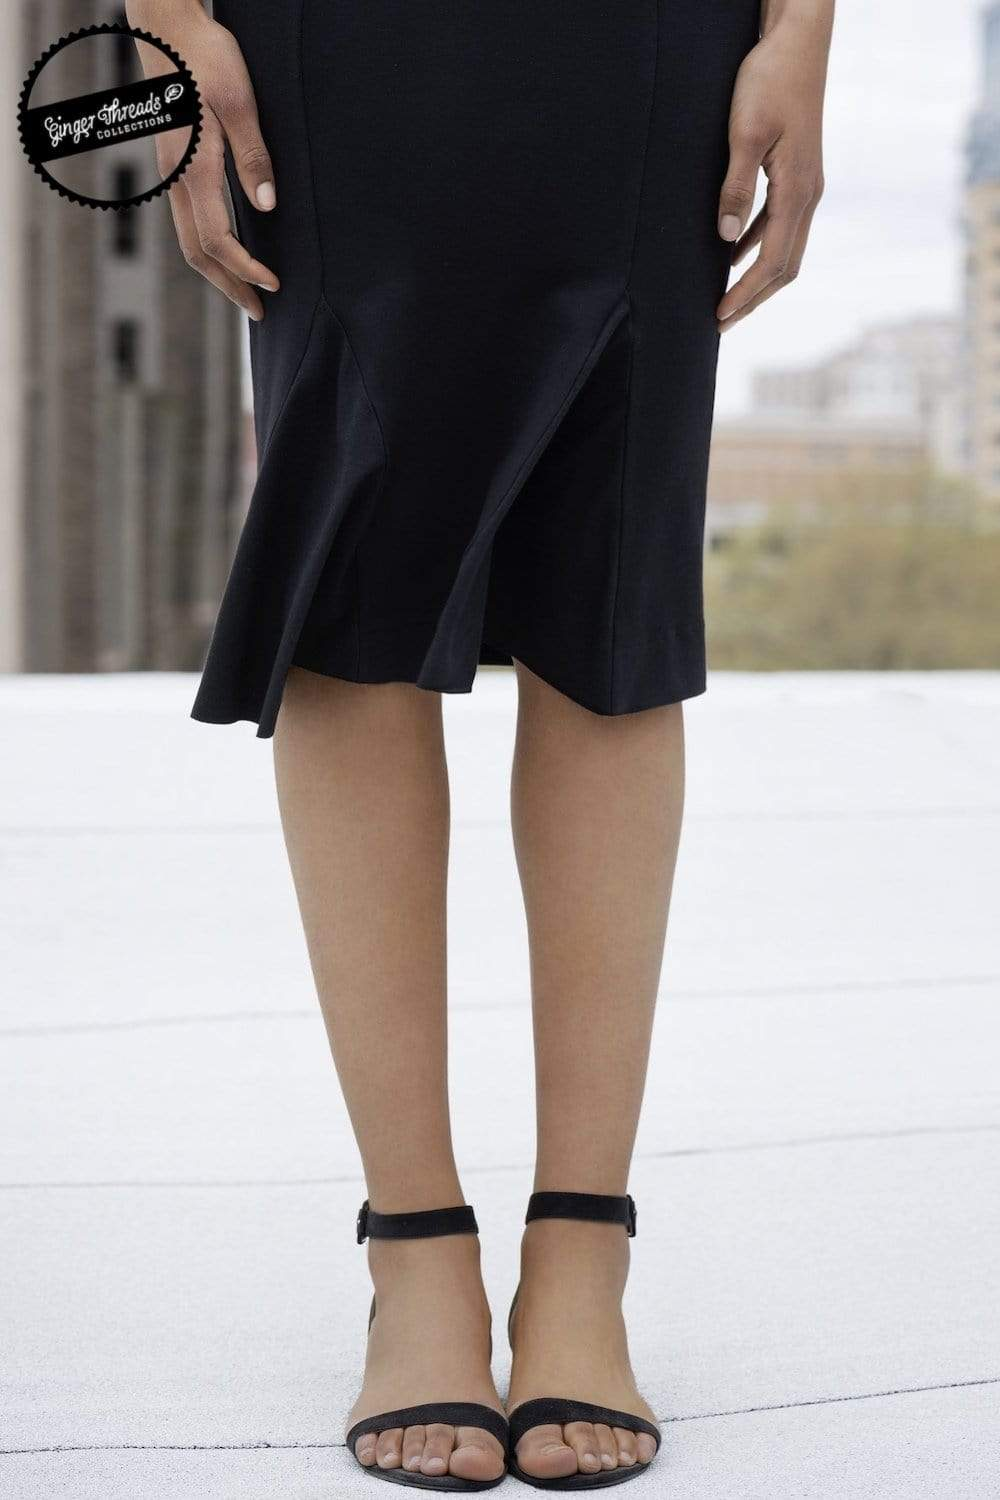 Ginger Threads Collections skirt Black pencil skirt